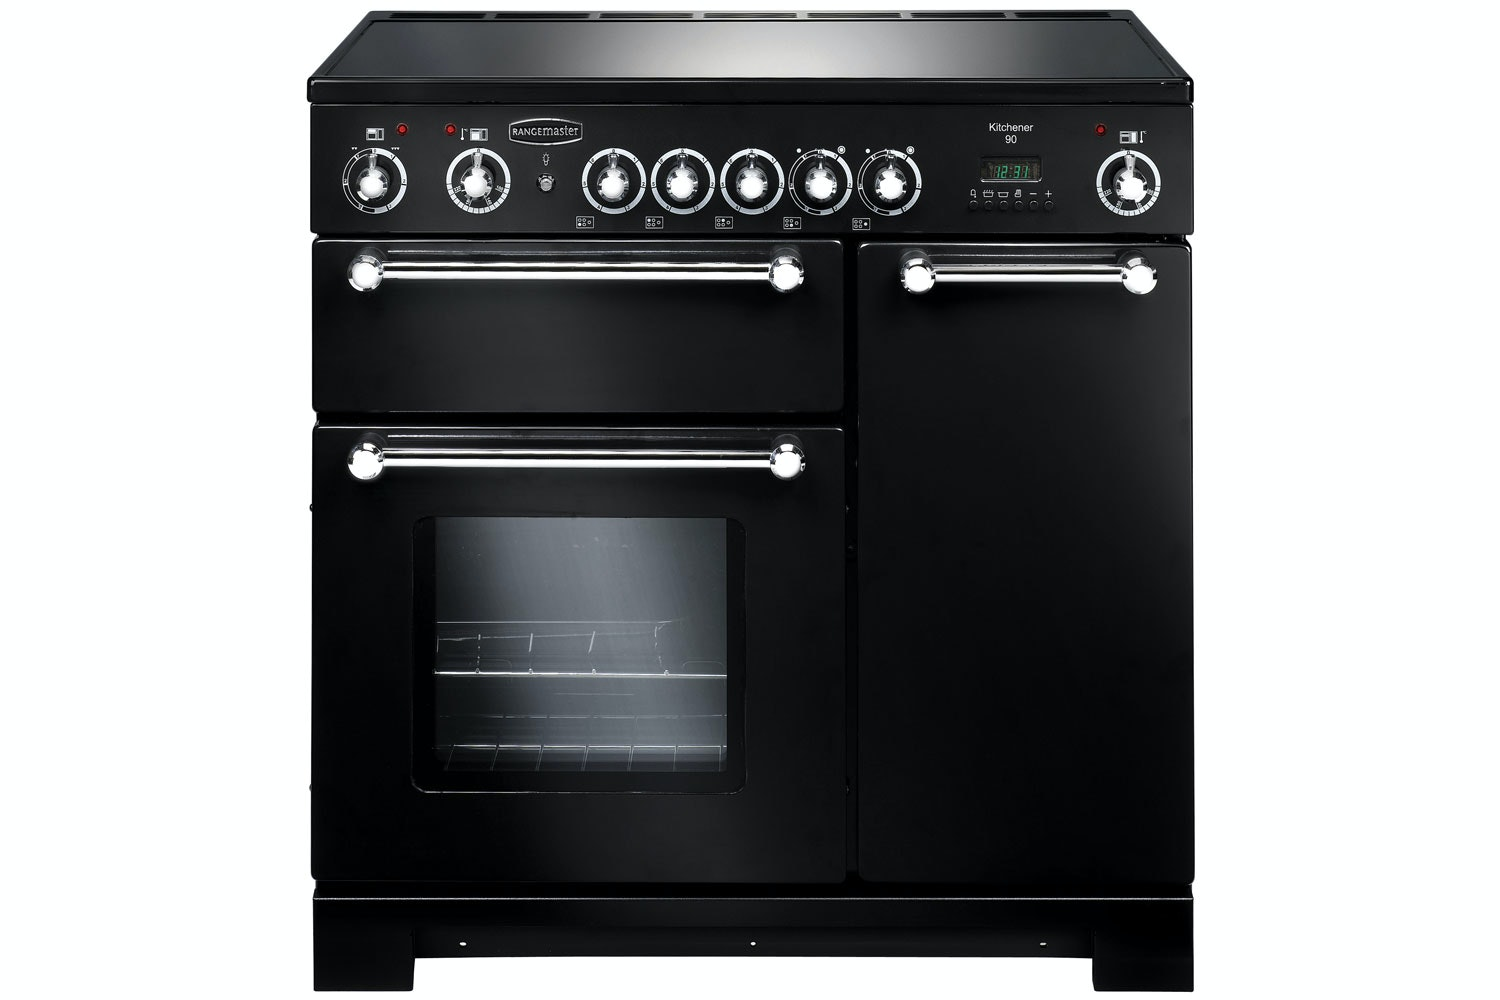 Rangemaster Kitchener 90cm Electric Range Cooker | KCH90ECBL/C | Ceramic